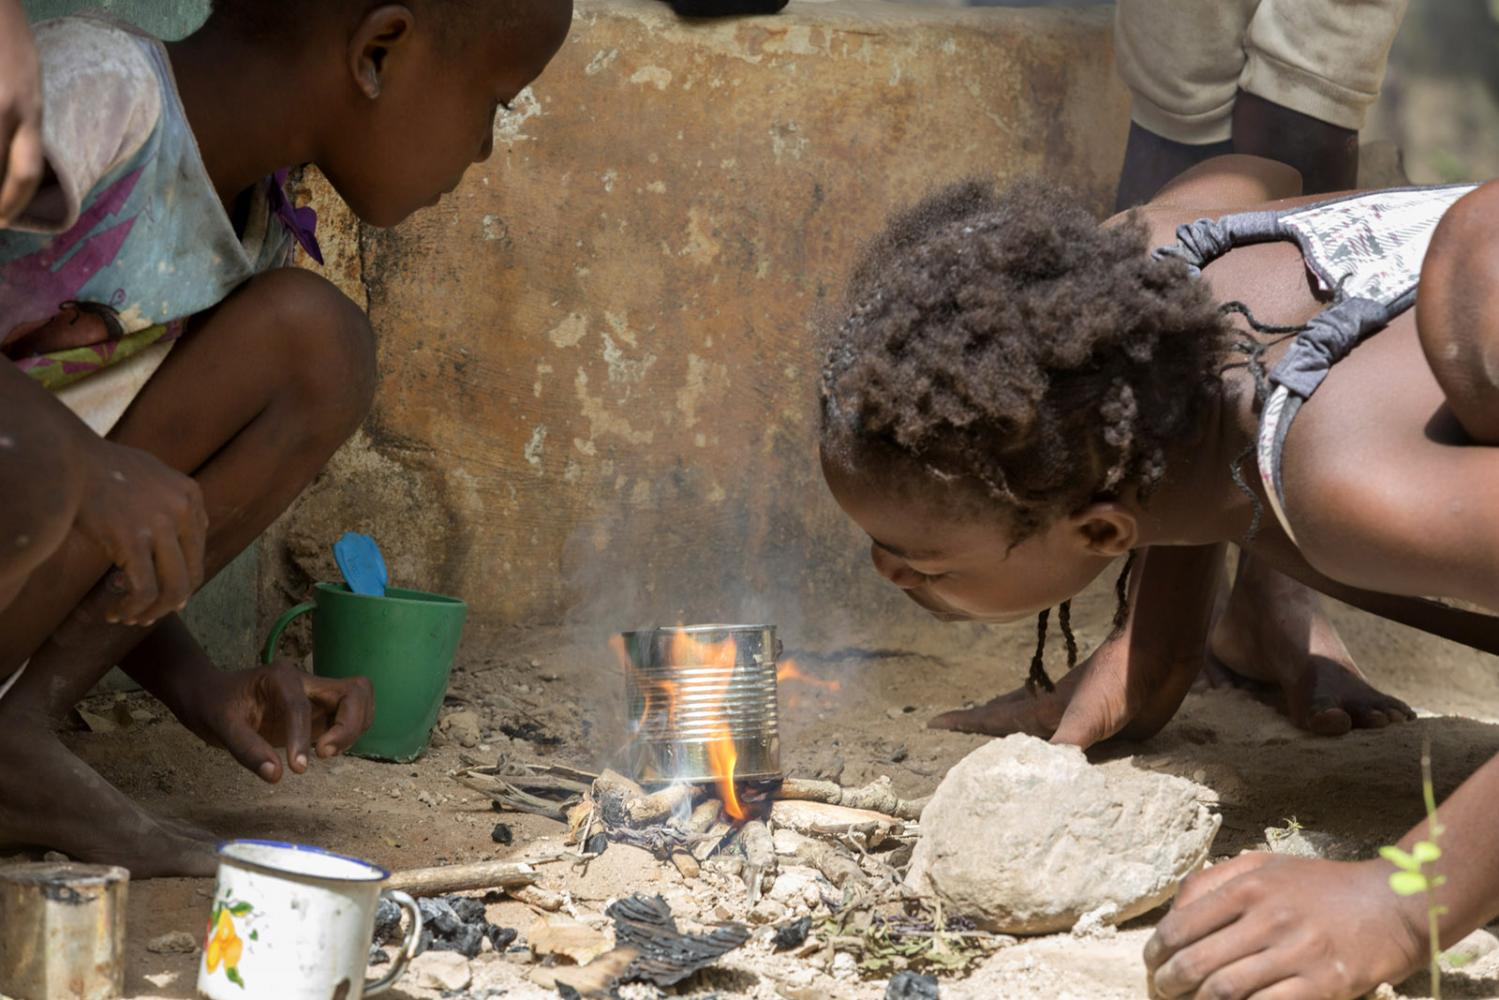 Little girls play kitchen buy lighting a small fire and putting a can over it in Milot, Haiti.